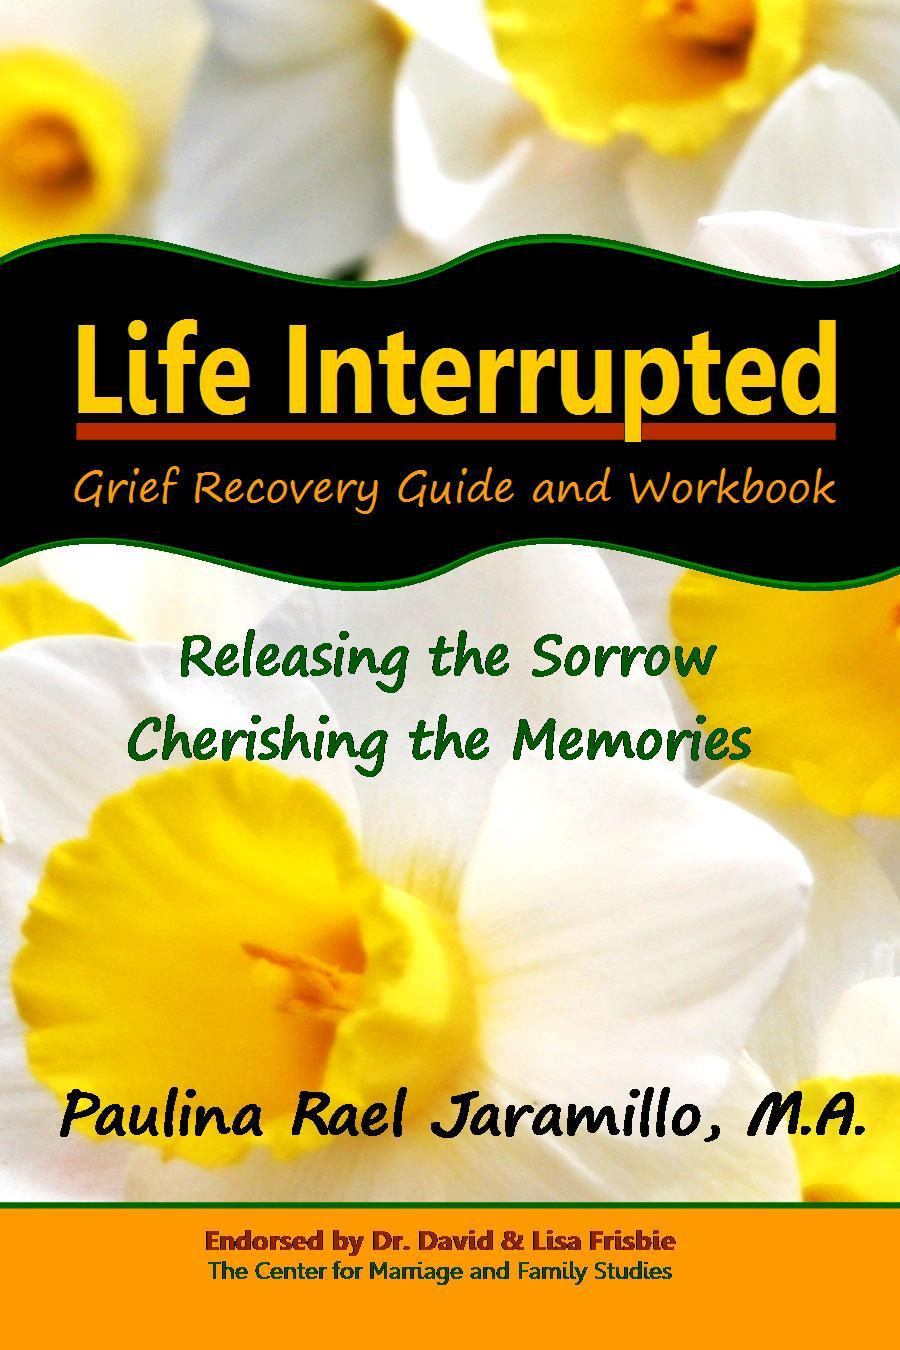 Life Interrupted: Grief Recovery Guide and Workbook Paulina Rael Jaramillo